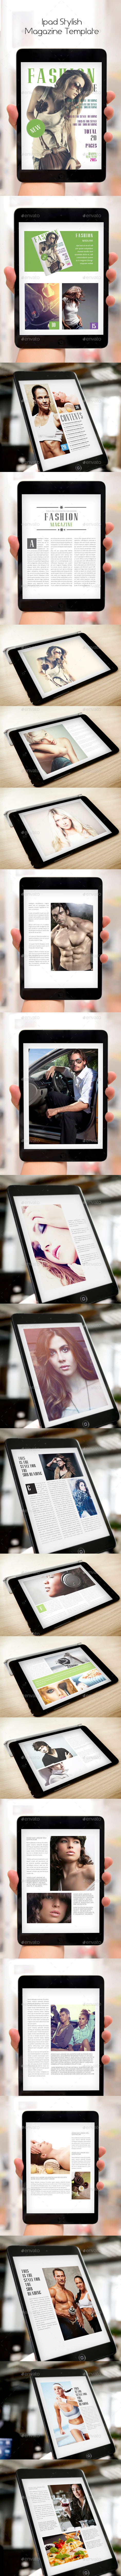 Ipad Stylish Magazine Template